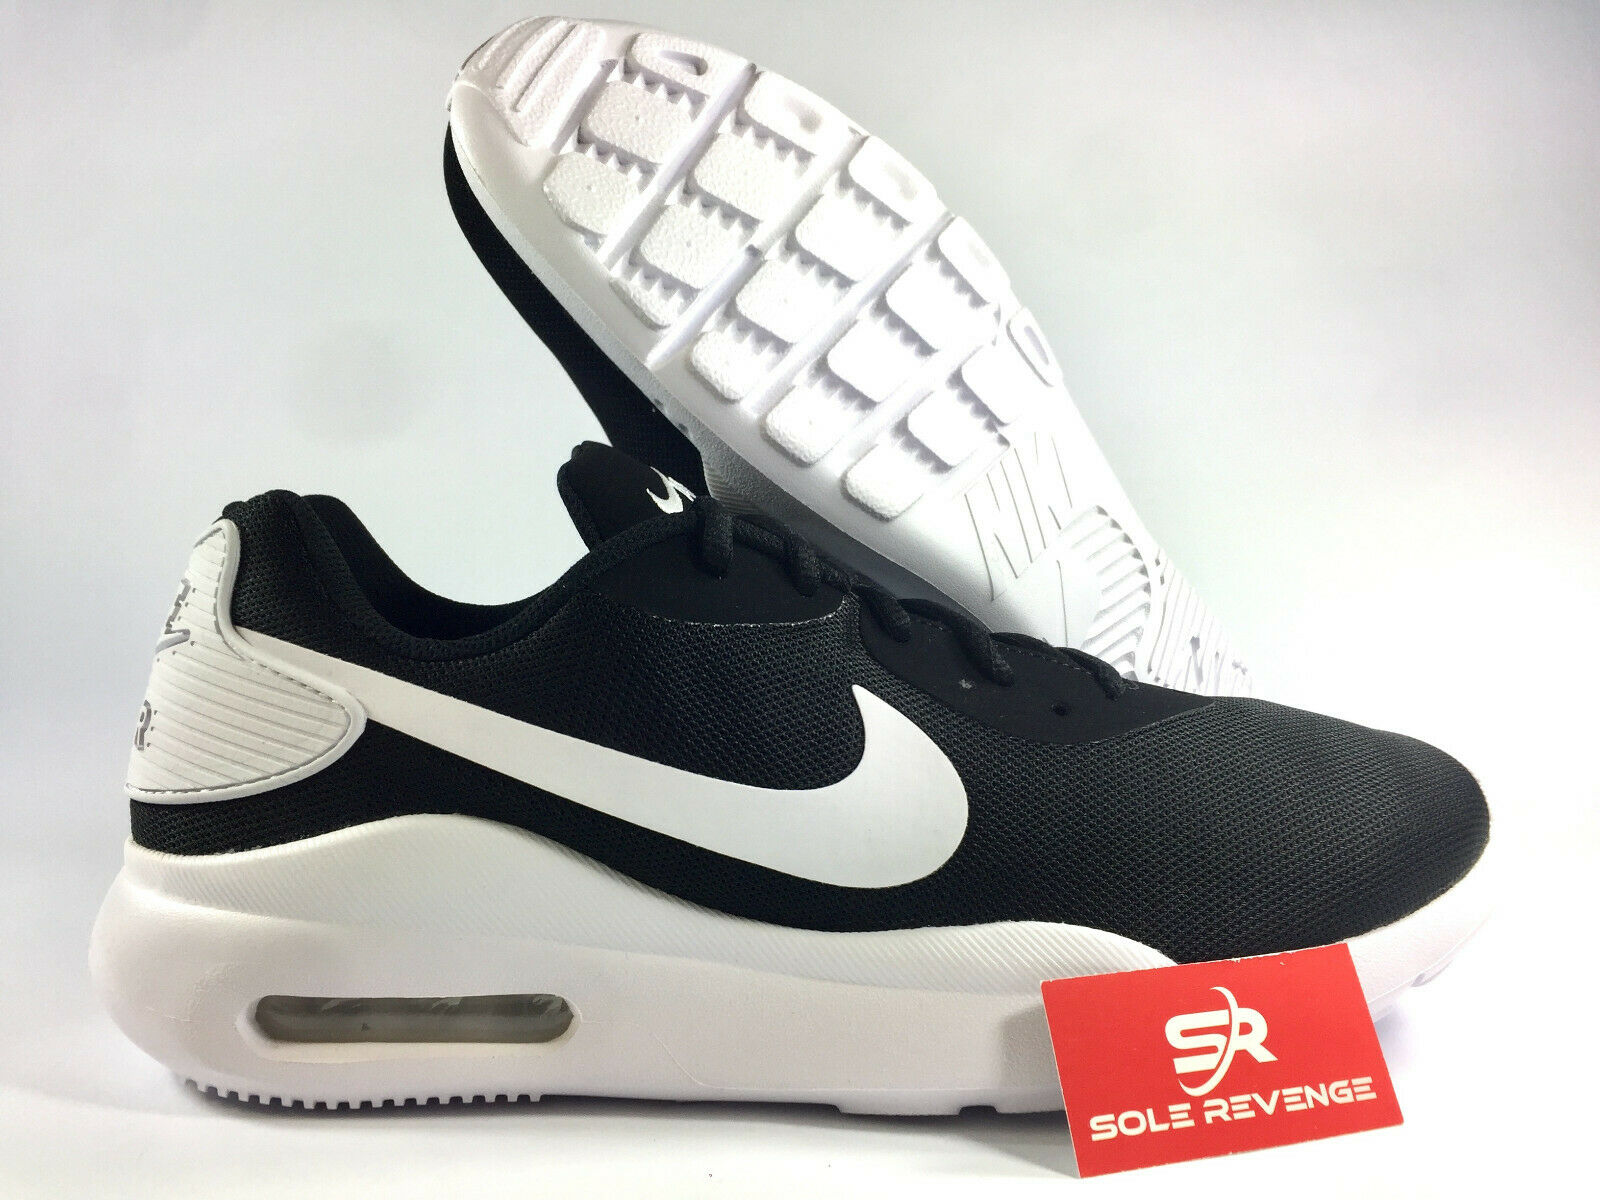 reputable site 17ada ed140 New Nike Air Max OKETO shoes shoes shoes Mens Black White Mens Running shoes  90 1 18bef7